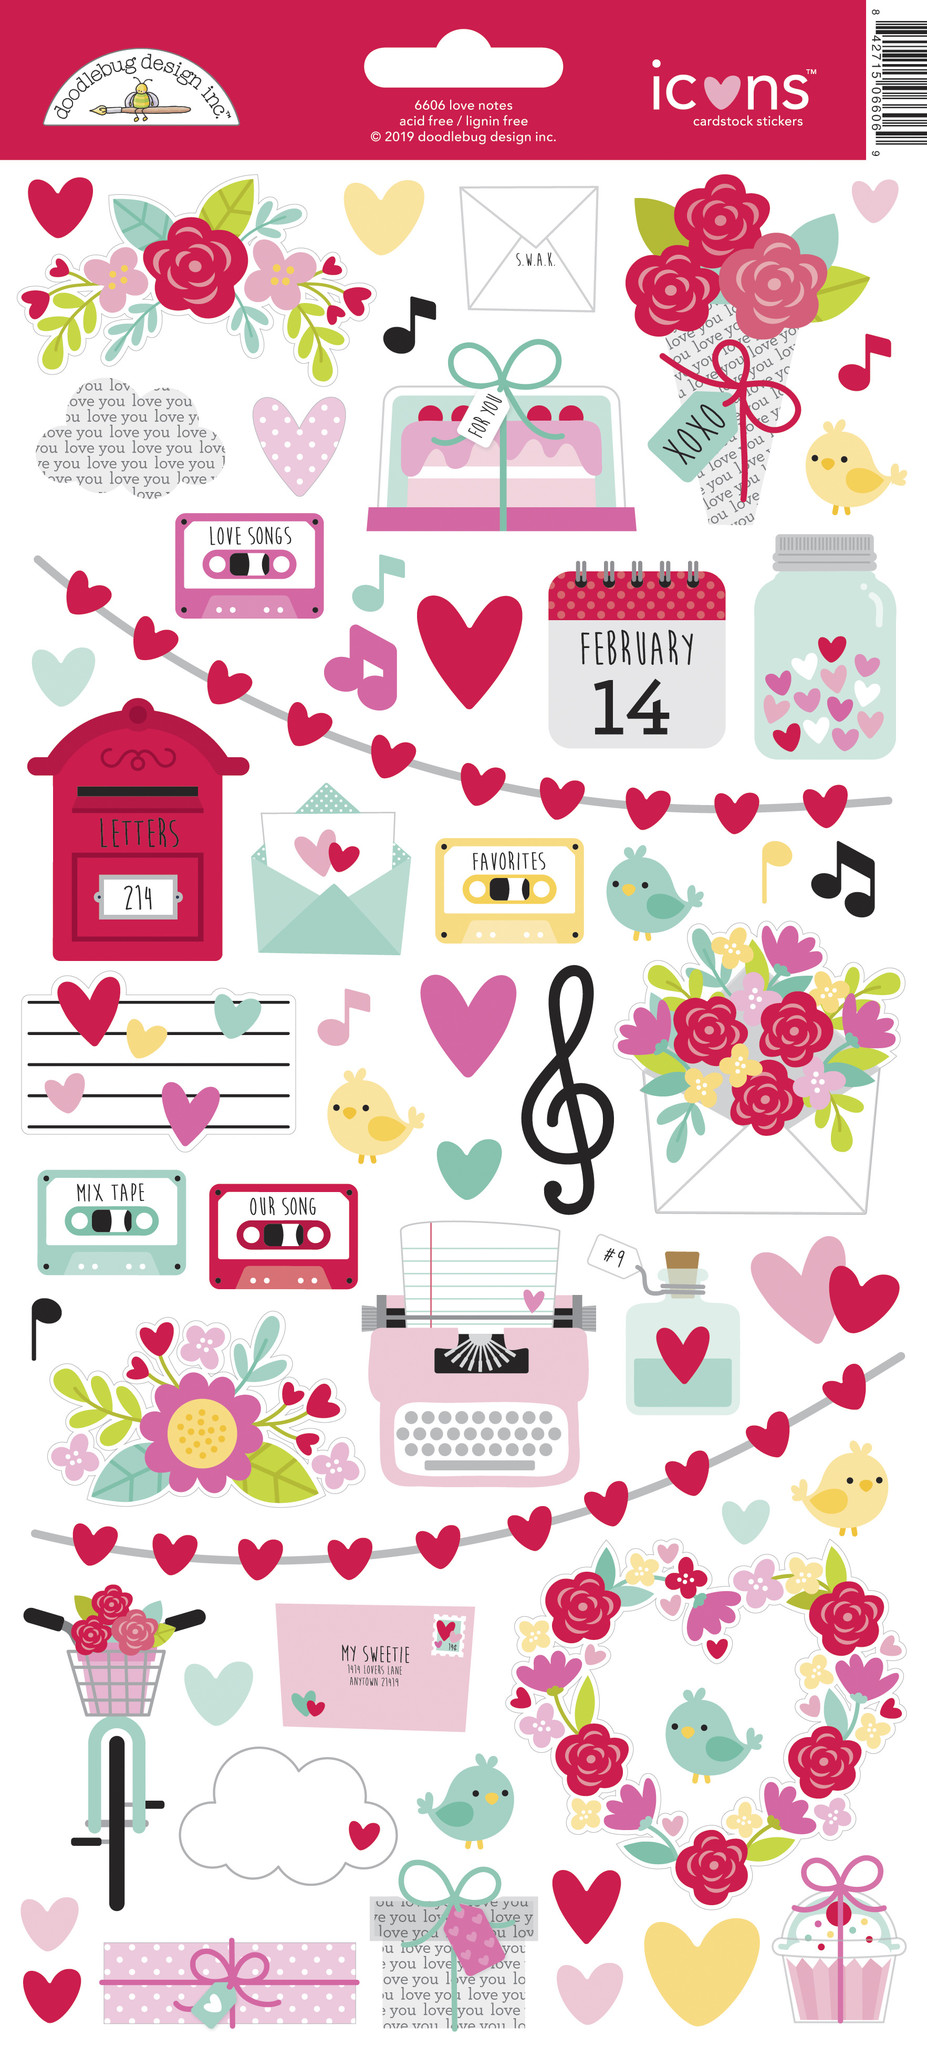 Live Laugh Love in Heart Planner Calendar Scrapbooking Crafting Stickers